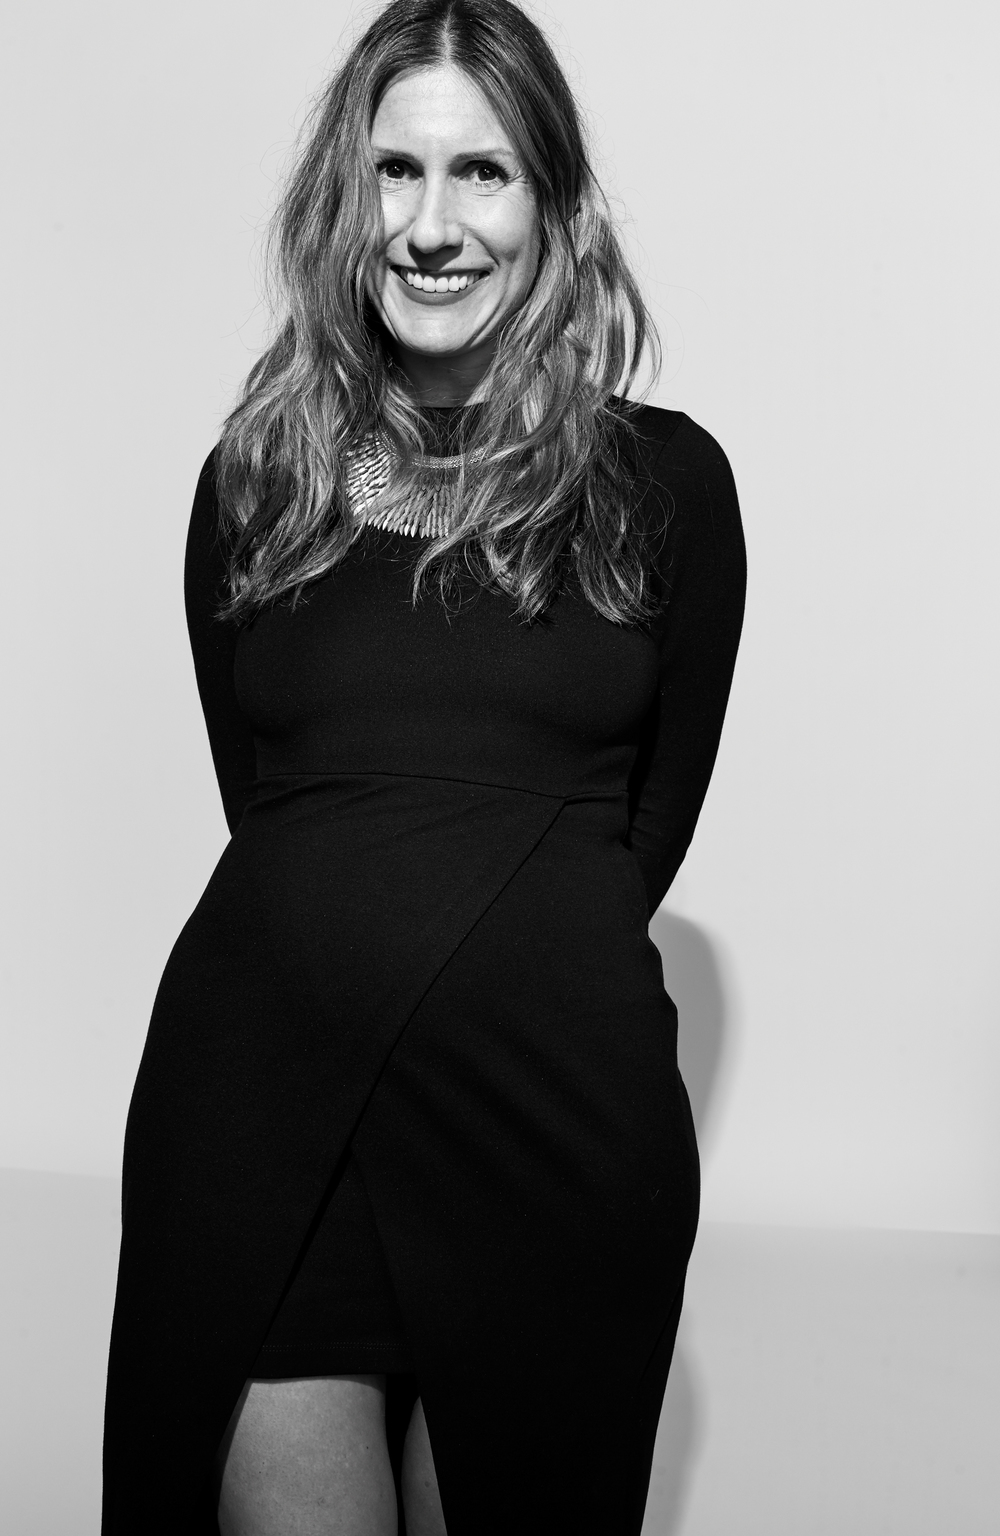 Anna Rosenflack photographed by Kate Owen black and white portrait #powertrip Marie Claire Magazine portraits of power